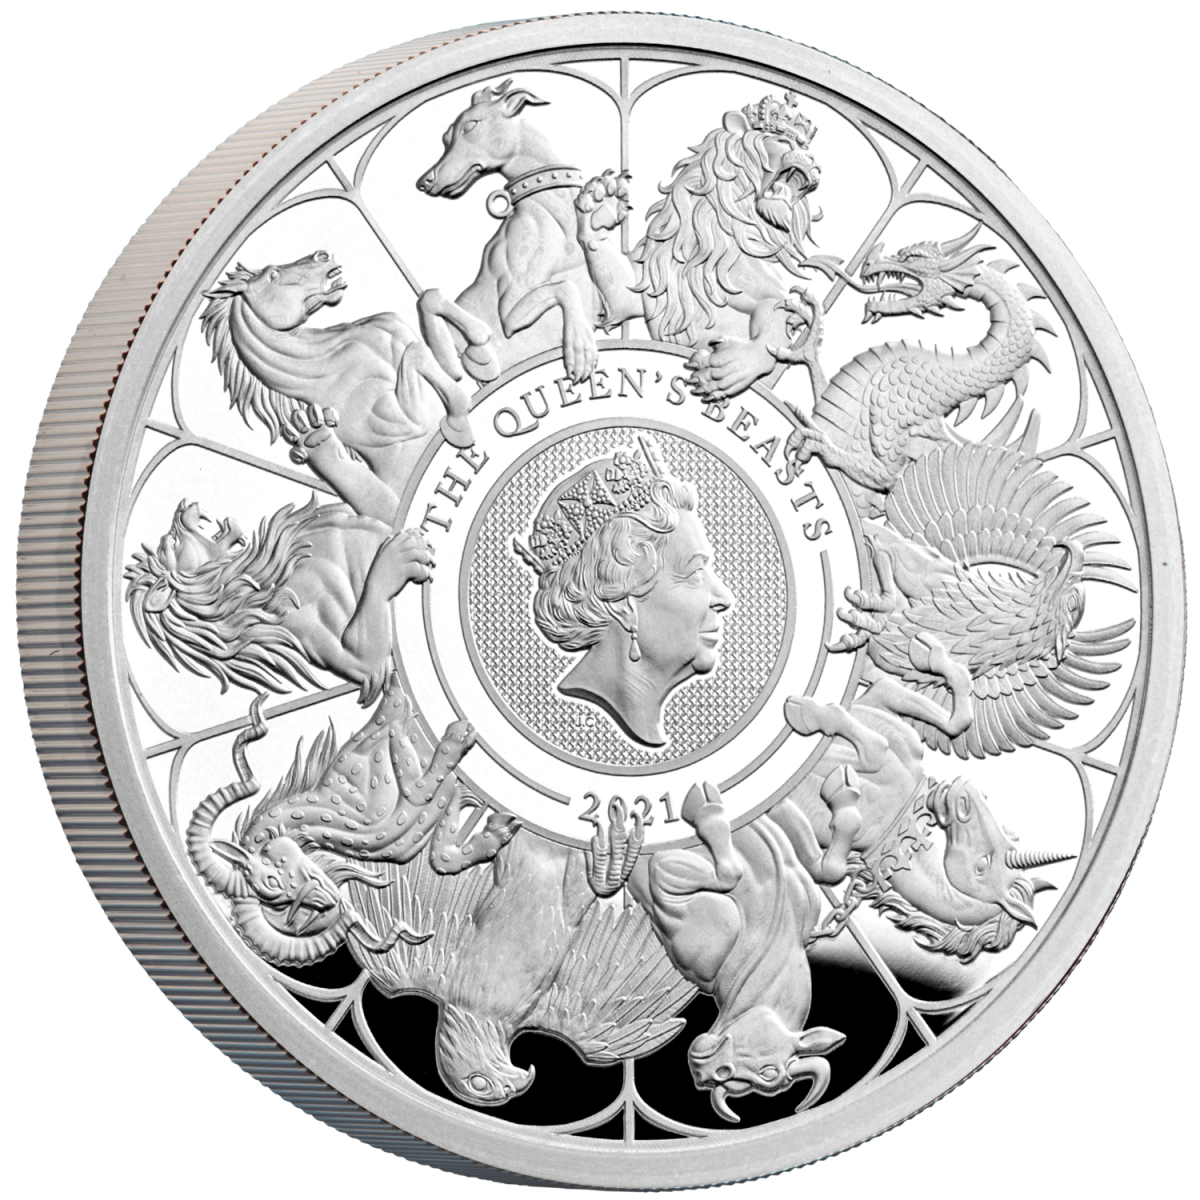 Image courtesy of the Royal Mint